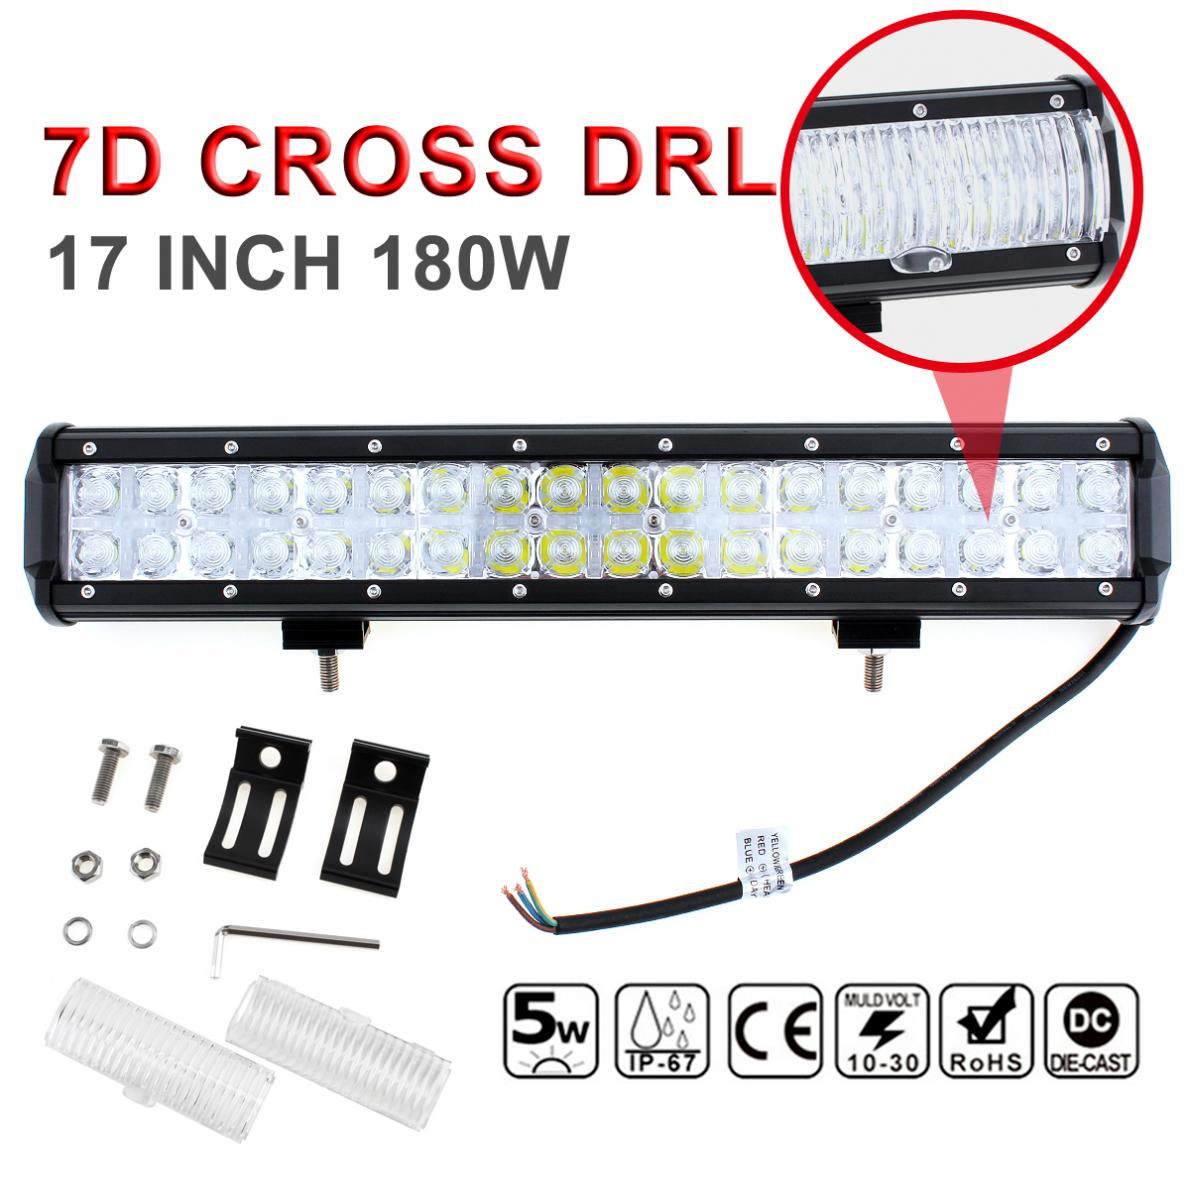 7D Cross DRL 17 Inch 180W LED Car Work Light Bar Spot Flood 36 LED Beam Combo Led Offroad Driving Light for SUV & Truck & ATV 1pc 4d led light bar car styling 27w offroad spot flood combo beam 24v driving work lamp for truck suv atv 4x4 4wd round square